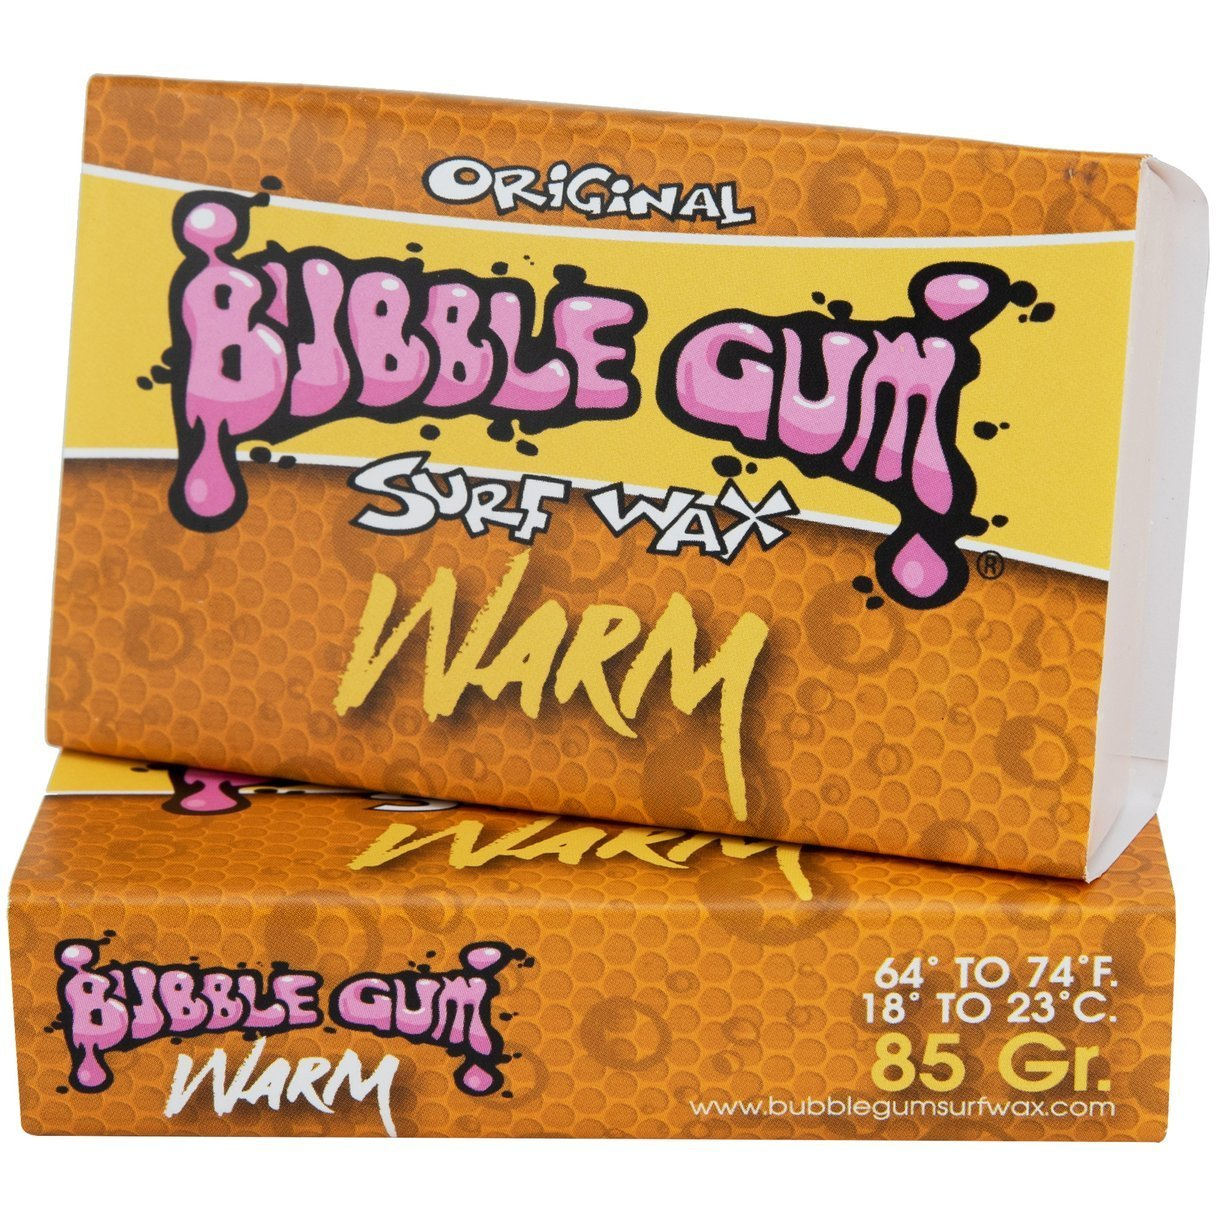 Bubble Gum Orange Surf Wax Warm 18-23°C